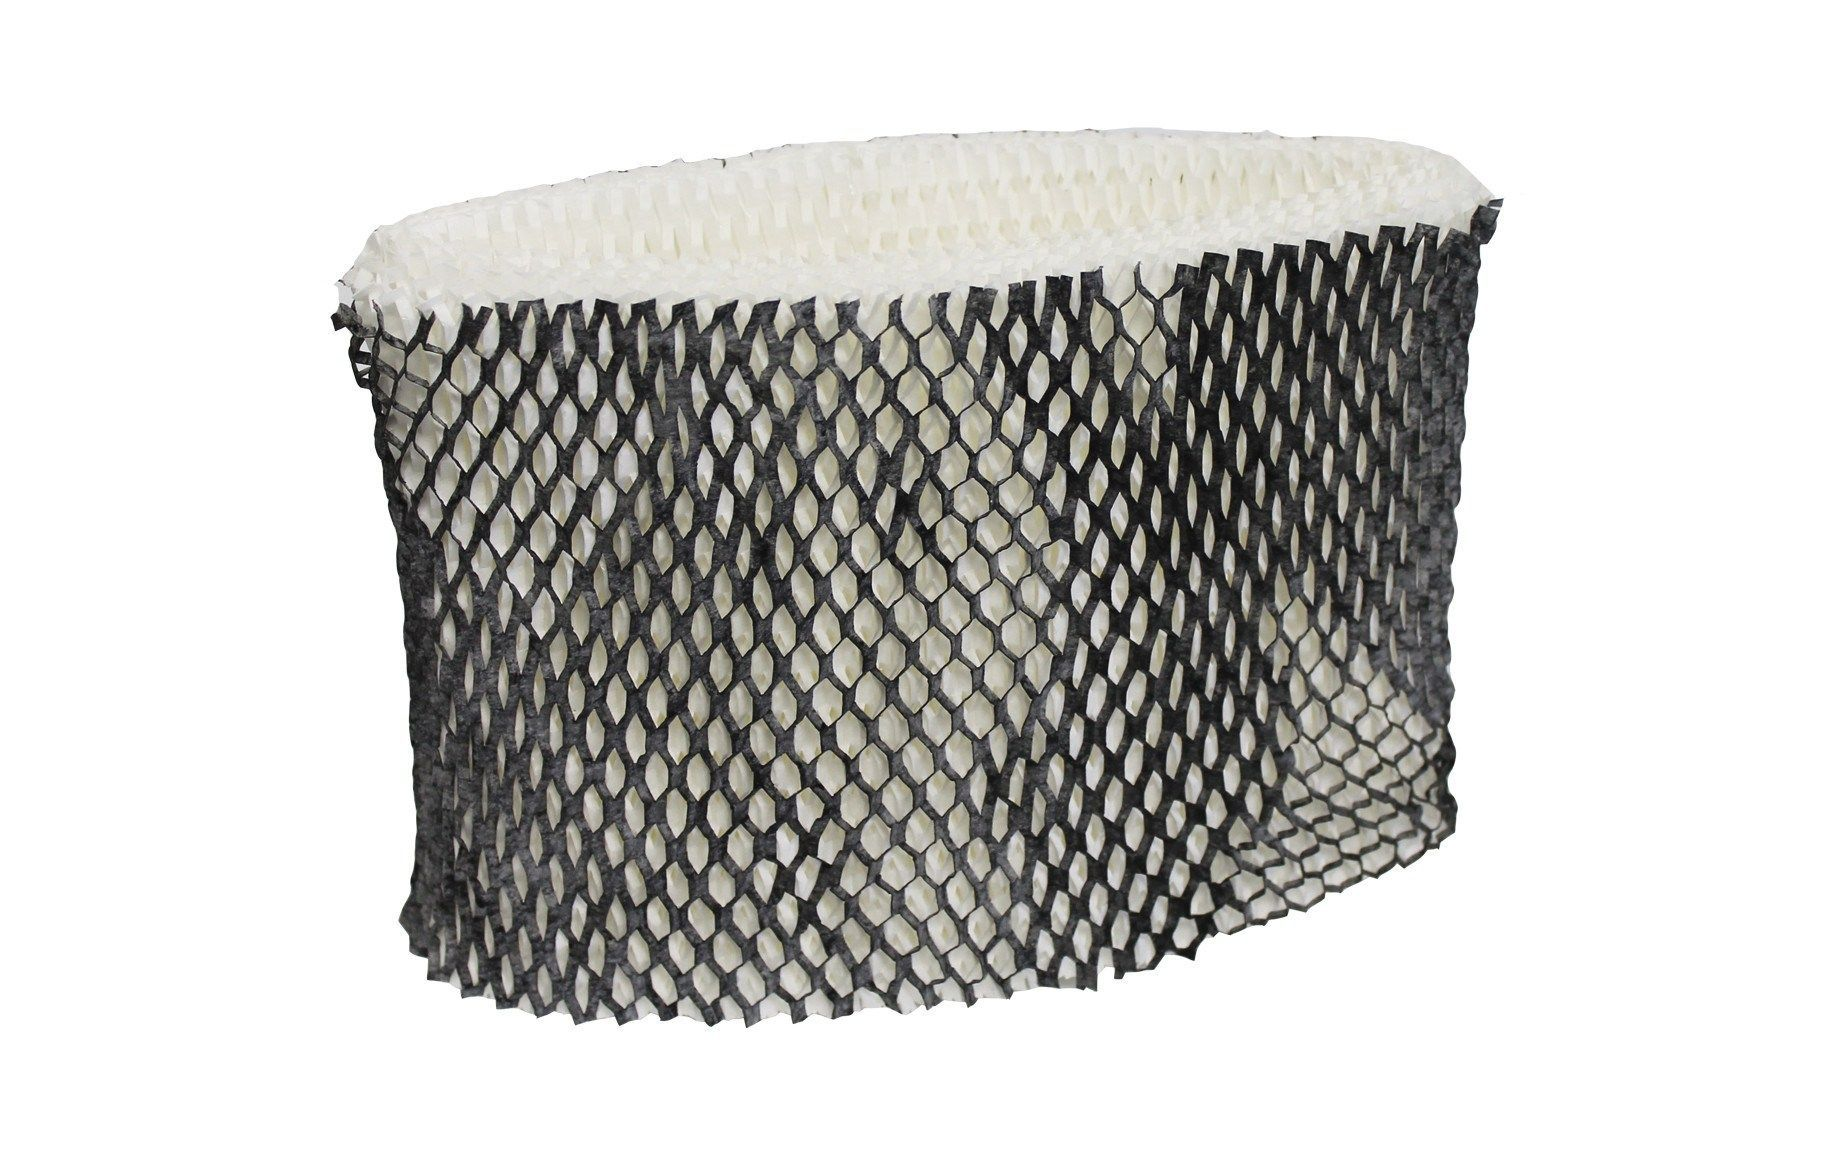 Crucial Air Humidifier WIck Filter Replacement Part